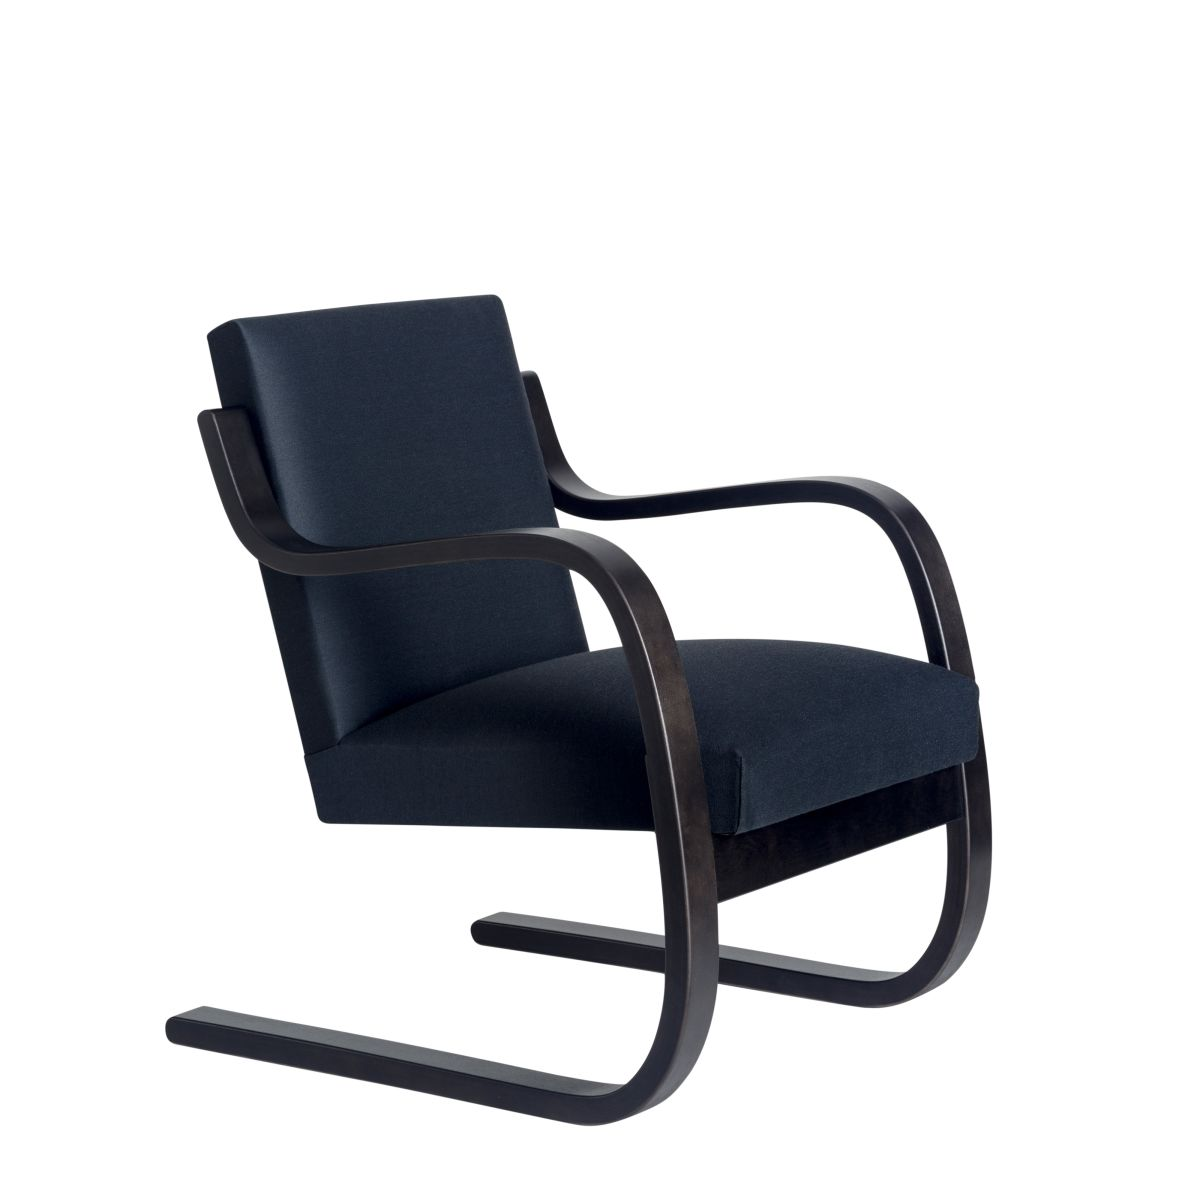 Armchair 402 HJ charcoal stain